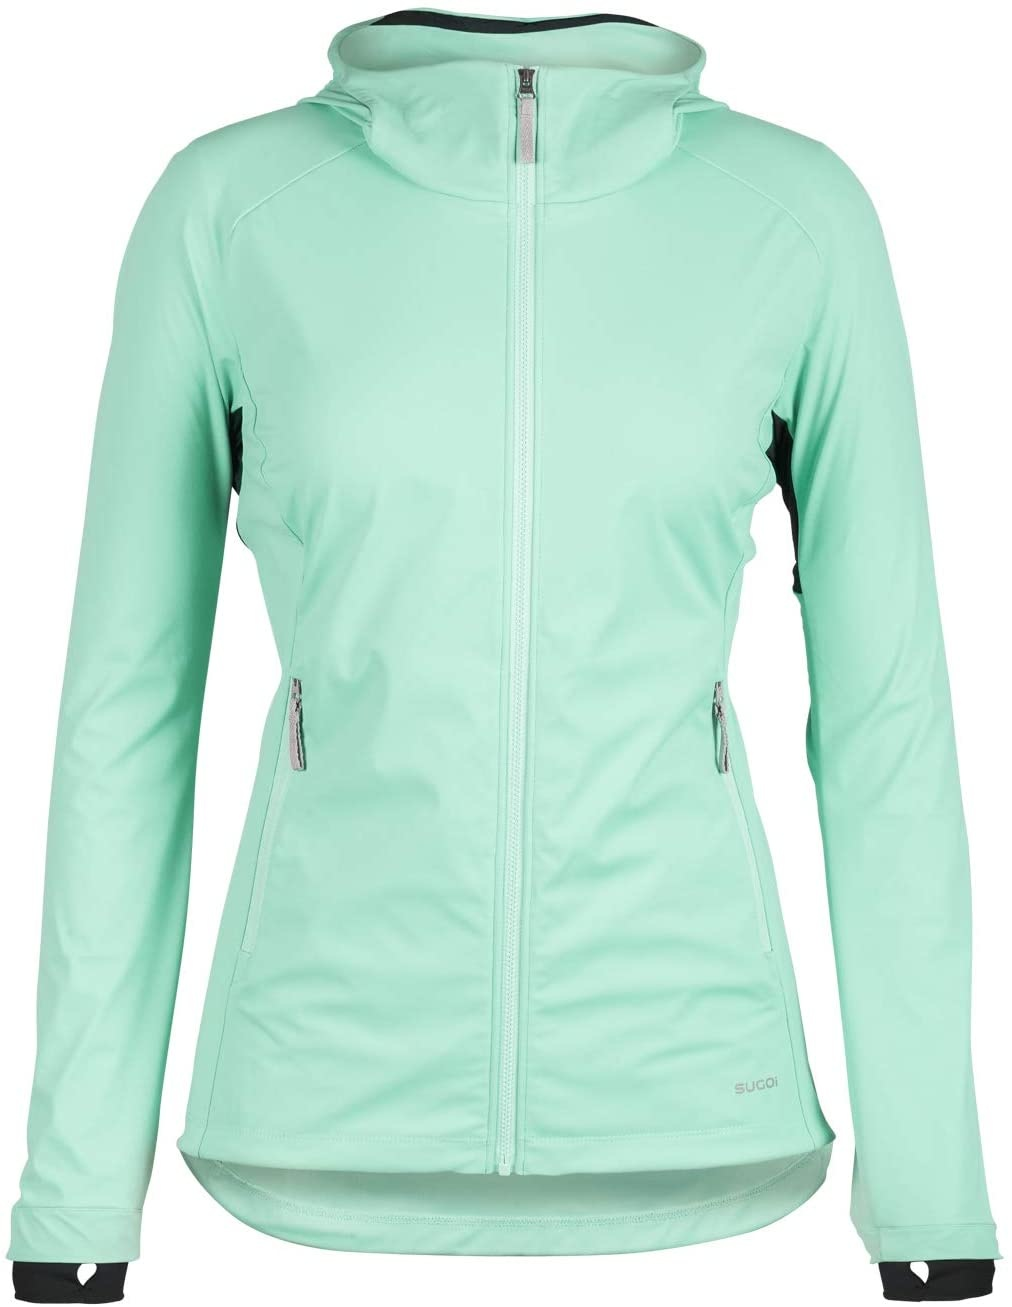 Sugoi Sugoi Firewall 180 Jacket Women's